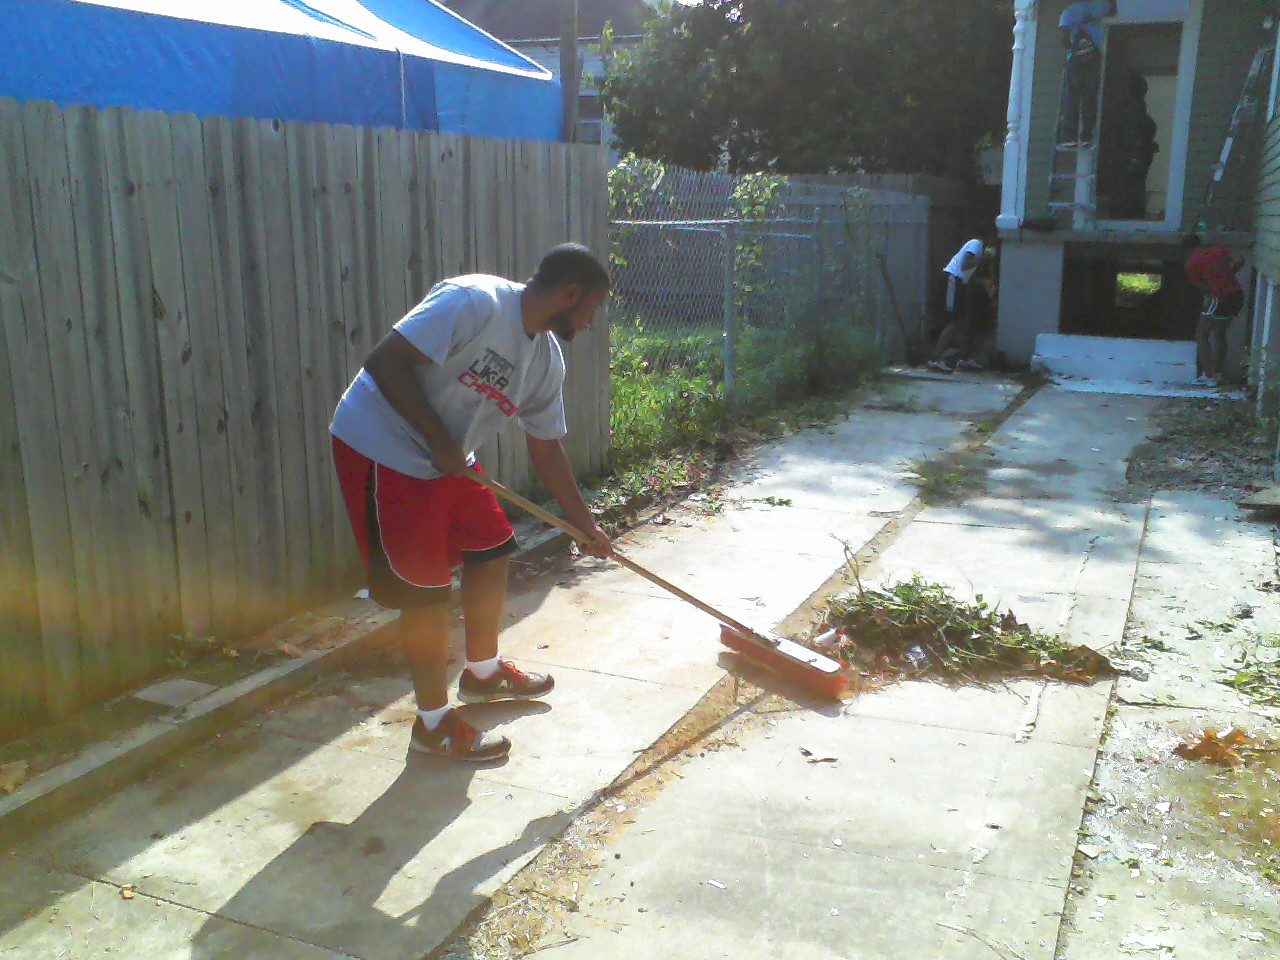 Sweeping his cares away.